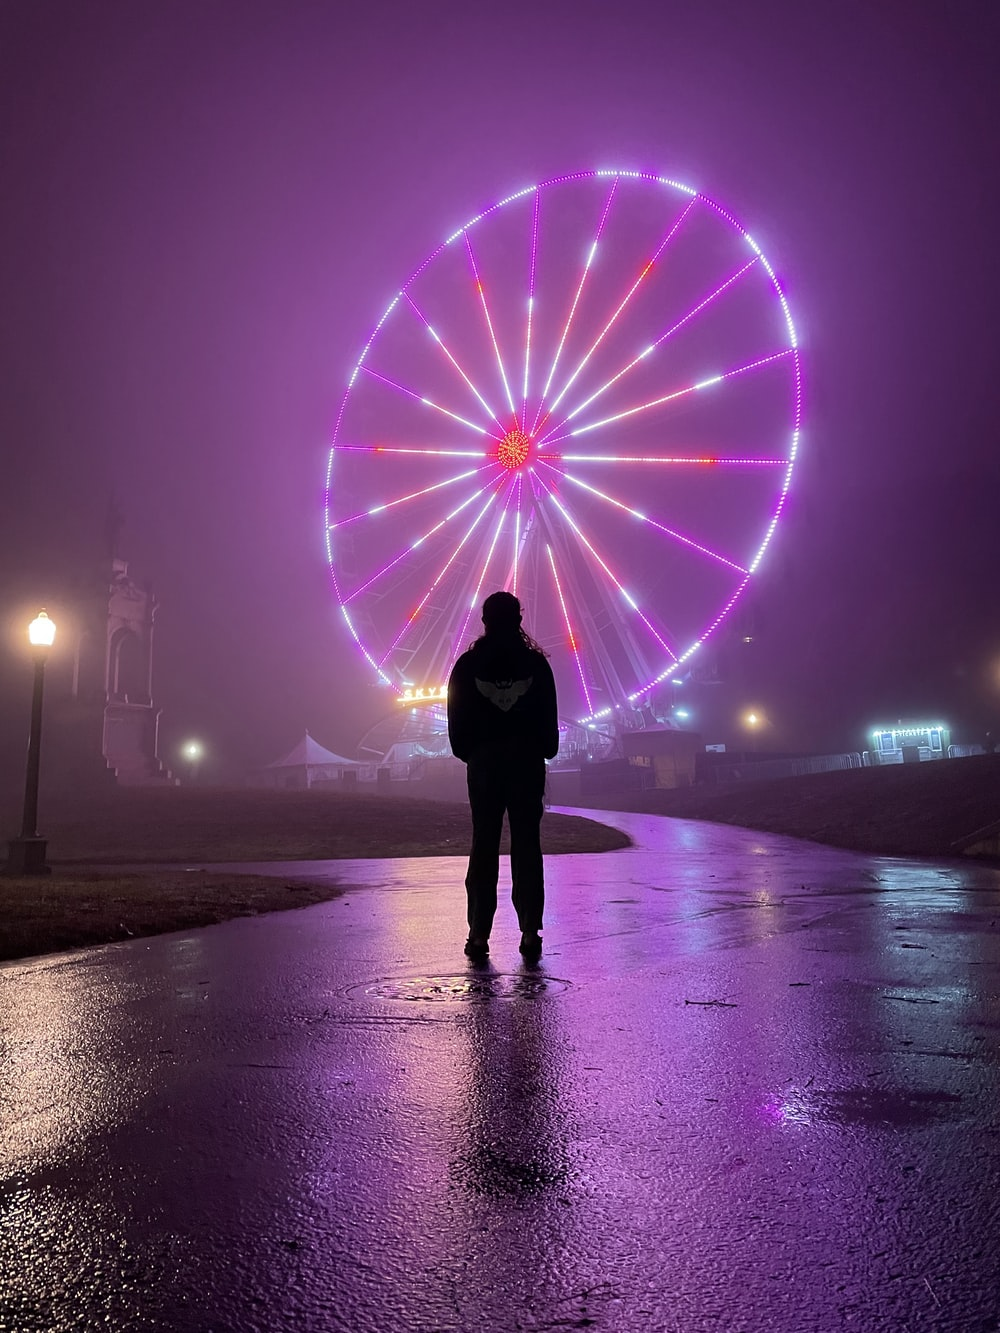 person standing on beach with purple lights